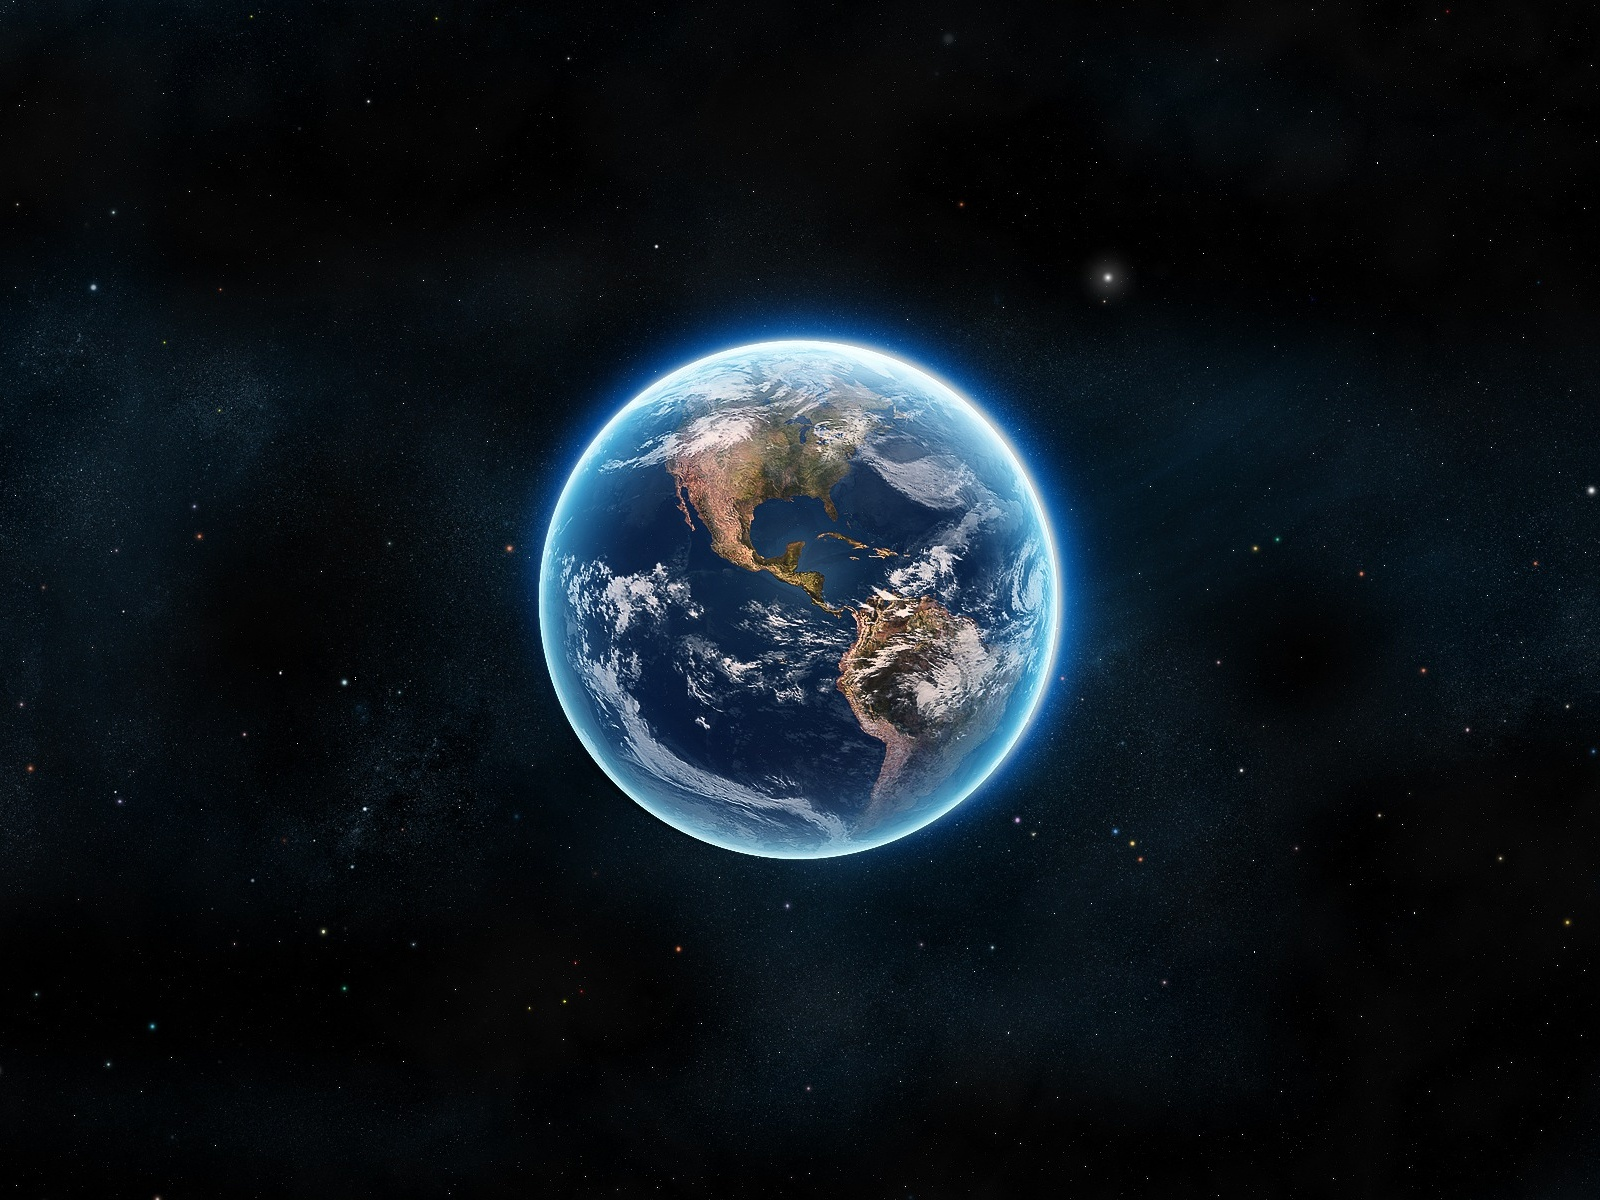 Blue Planet Earth Wallpaper in 1600x1200 Normal